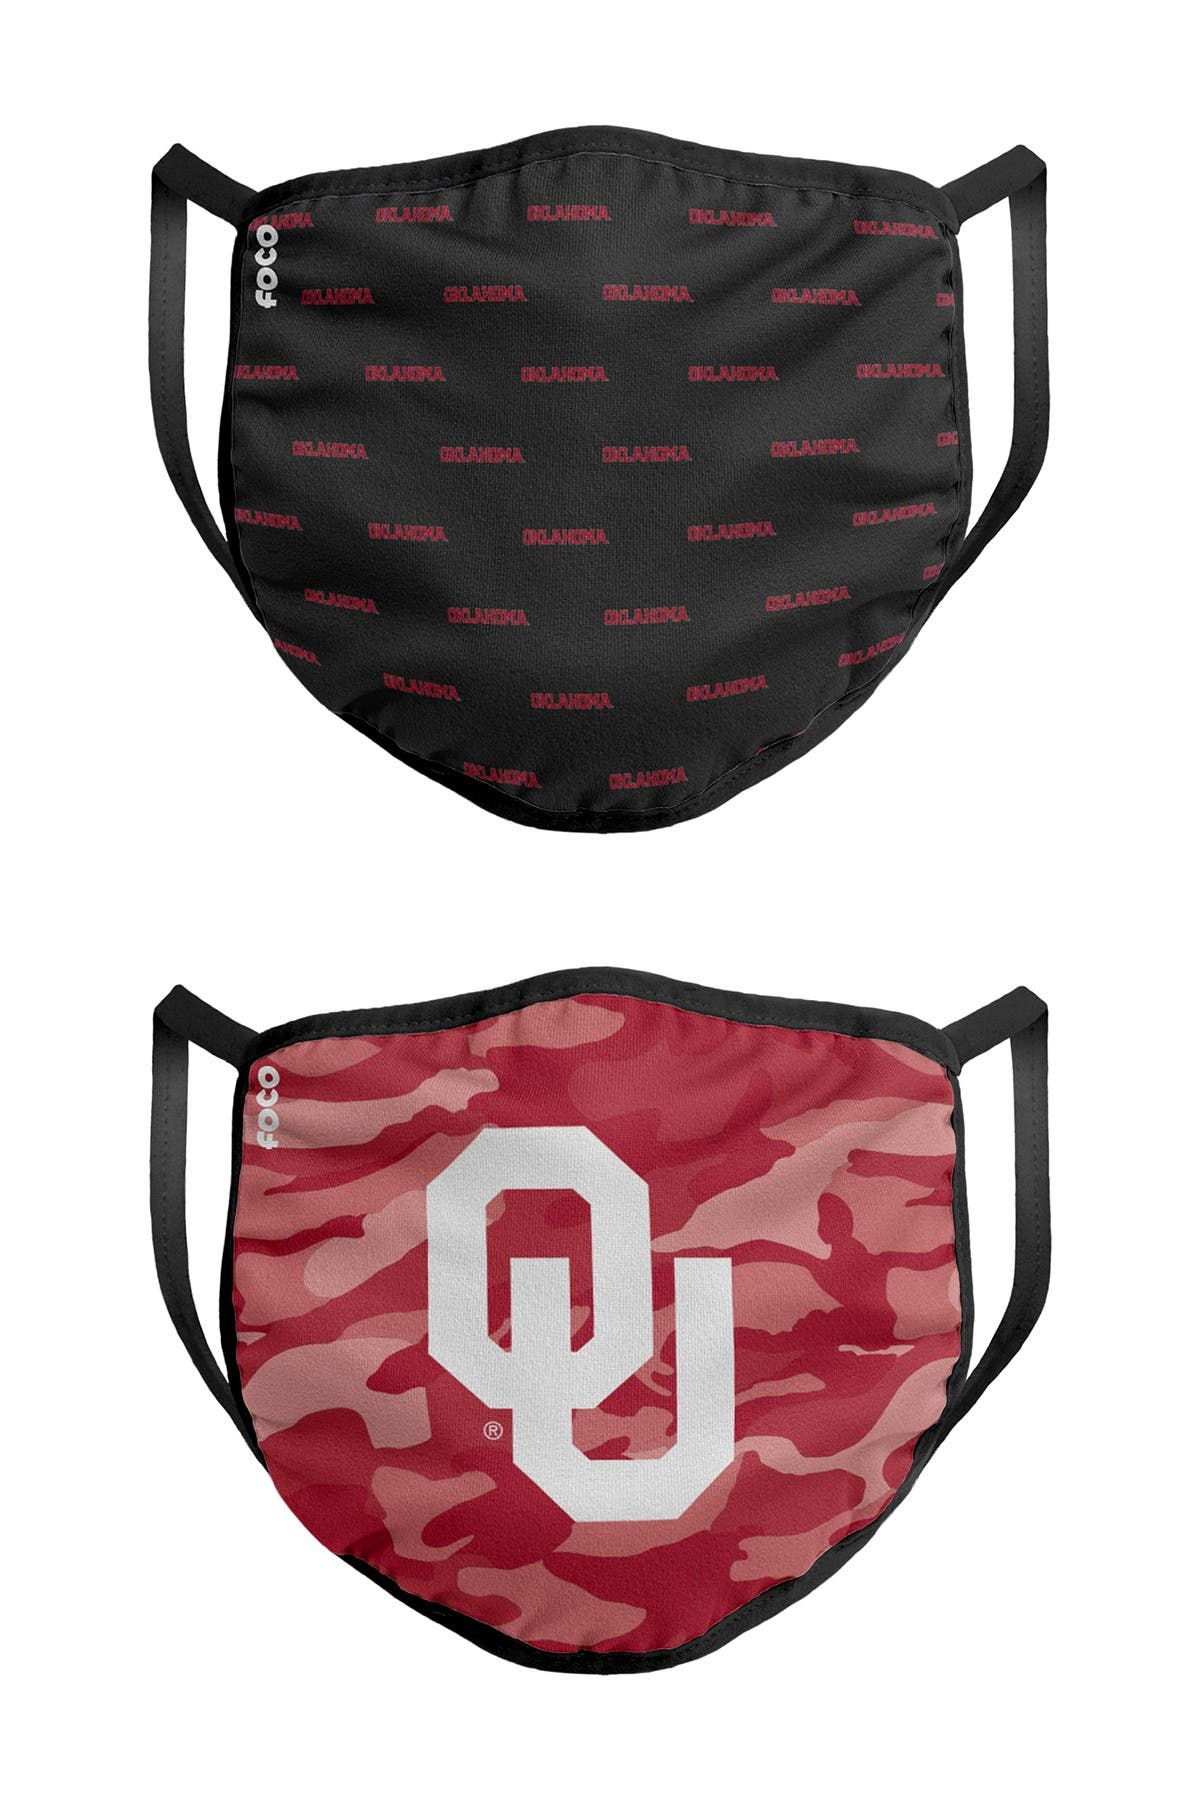 Image of FOCO NCAA Oklahoma Clutch Printed Face Cover - Pack of 2